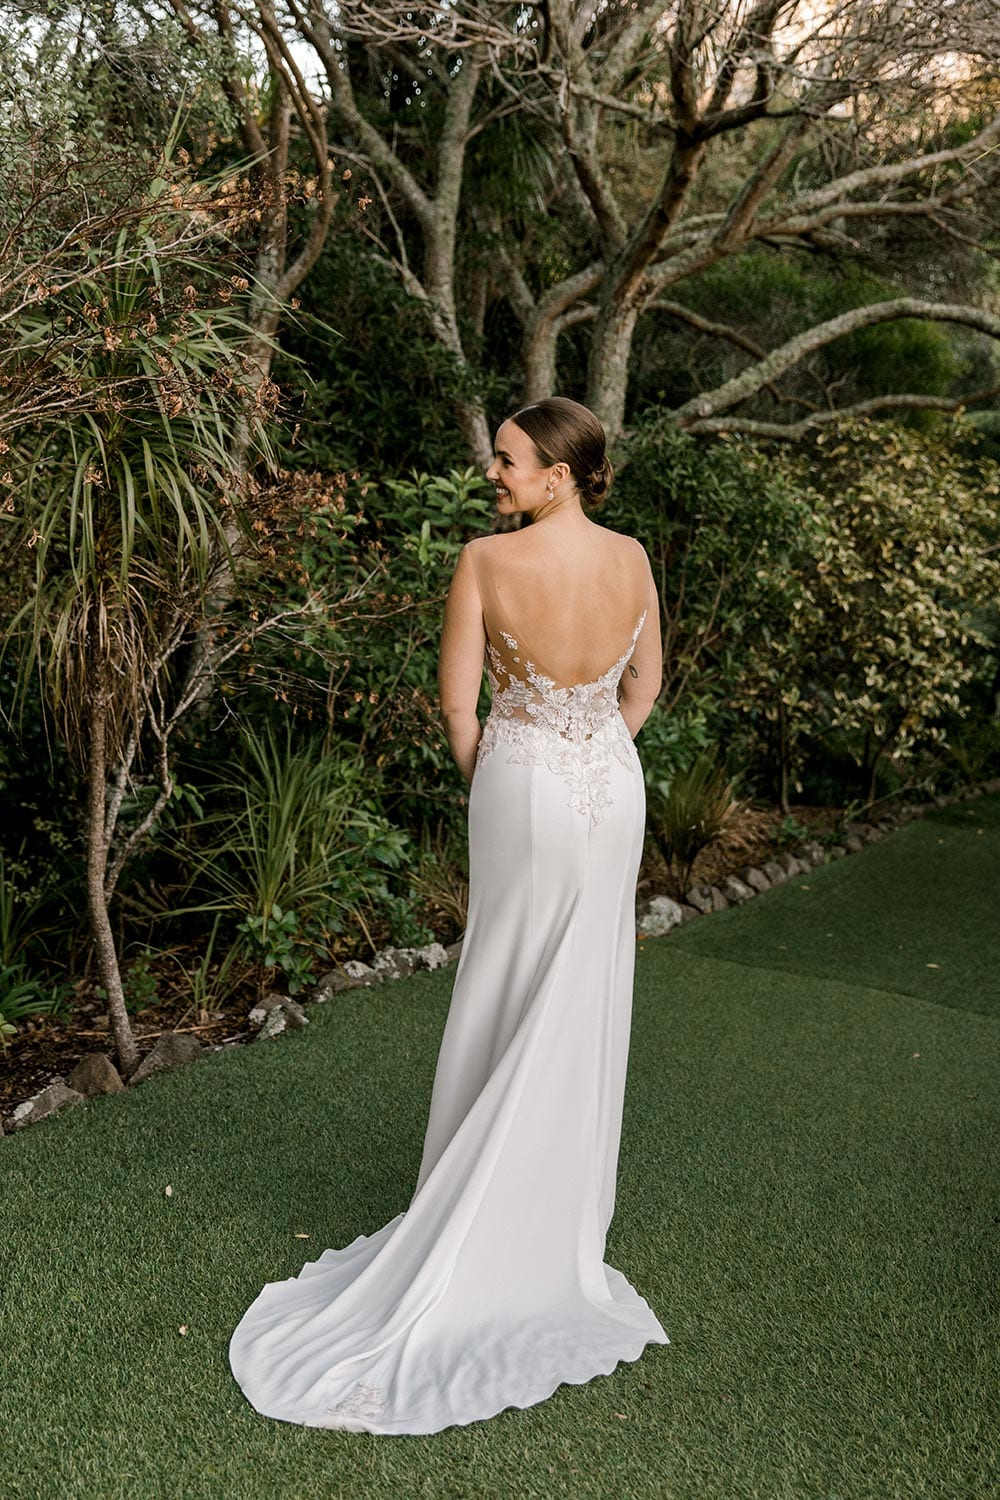 Samantha Wedding Dress from Vinka Design. This beautiful wedding dress has a nude sheer illusion strapless neckline made from fine Italian tulle. Low sheer back & structured bodice, & soft crepe train. Back detail of gown. Photographed in Landscaped garden.